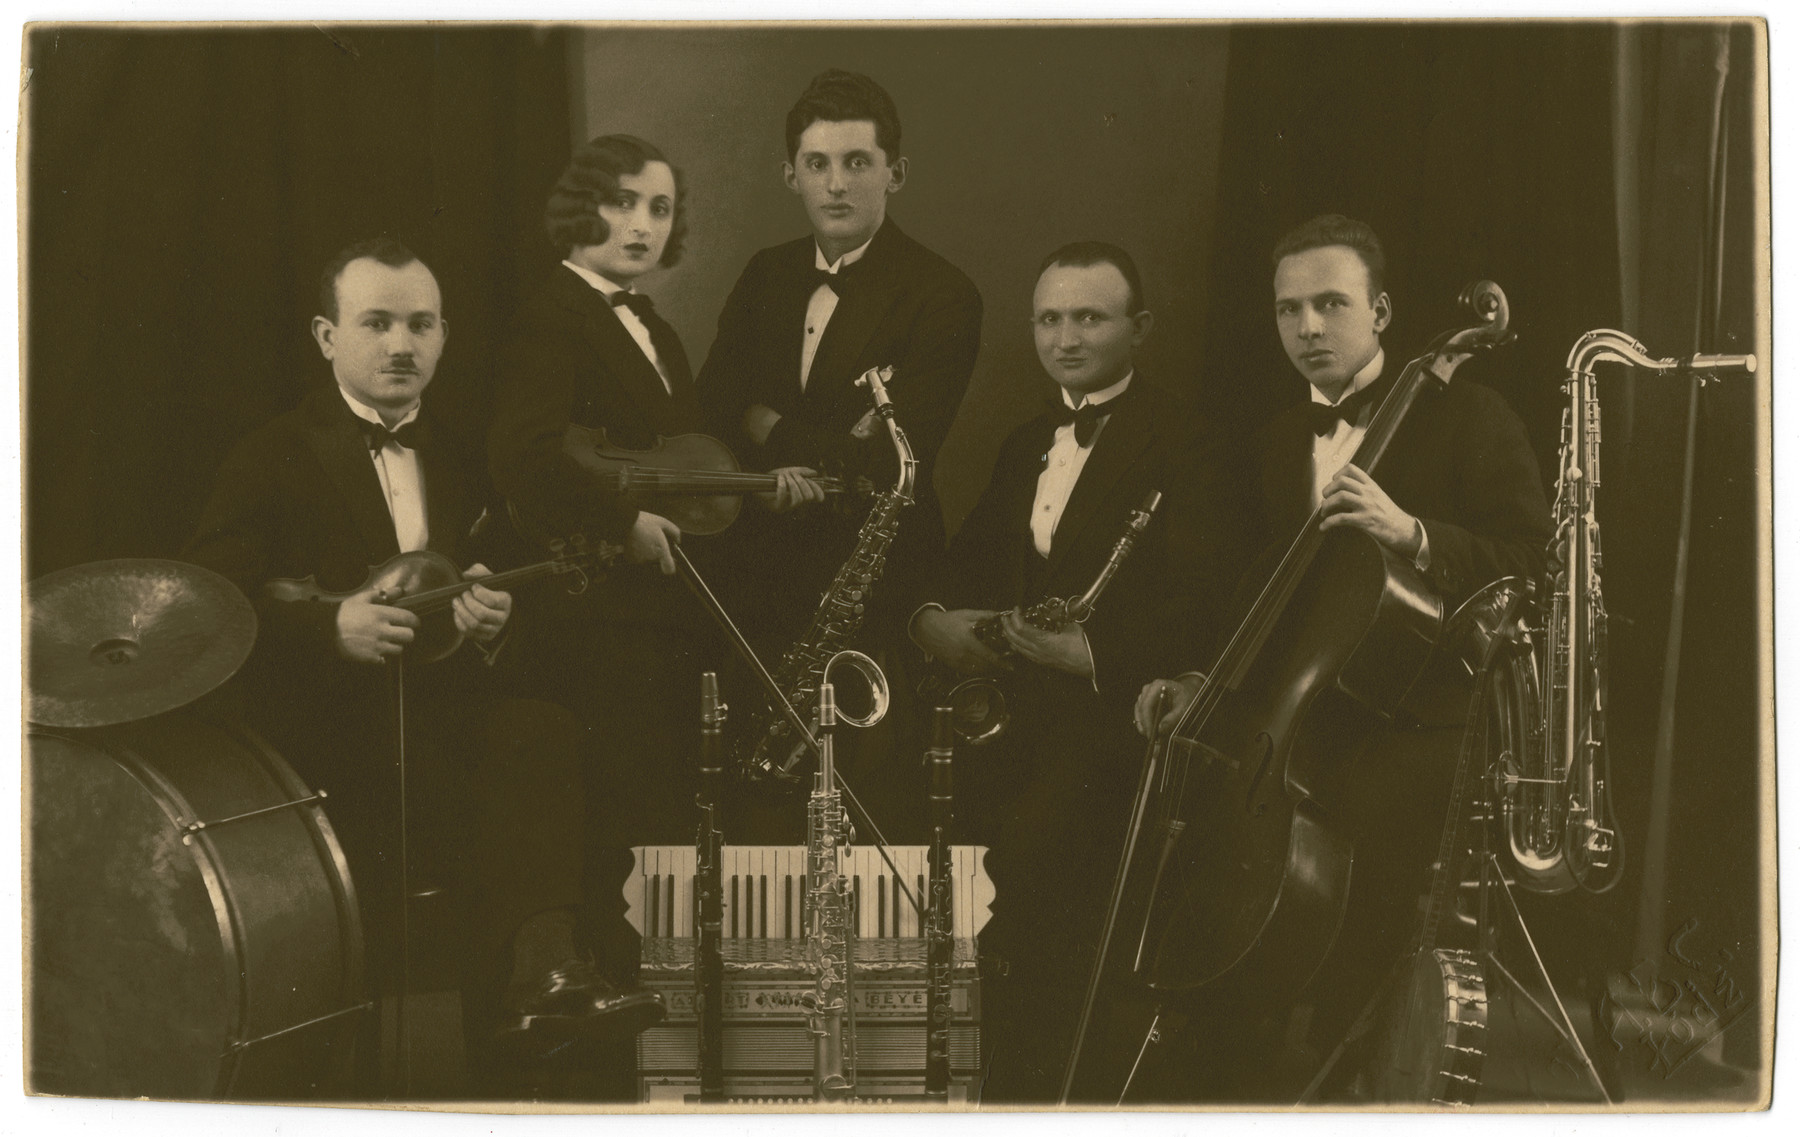 Portrait of a small band in prewar Lodz, Poland.  Avrum Feder (a cousin of the donor's grandmother who peished in the Holocaust) is pictured in the center.  Maurice Bergen (grandfather of the donor) is on the far right.